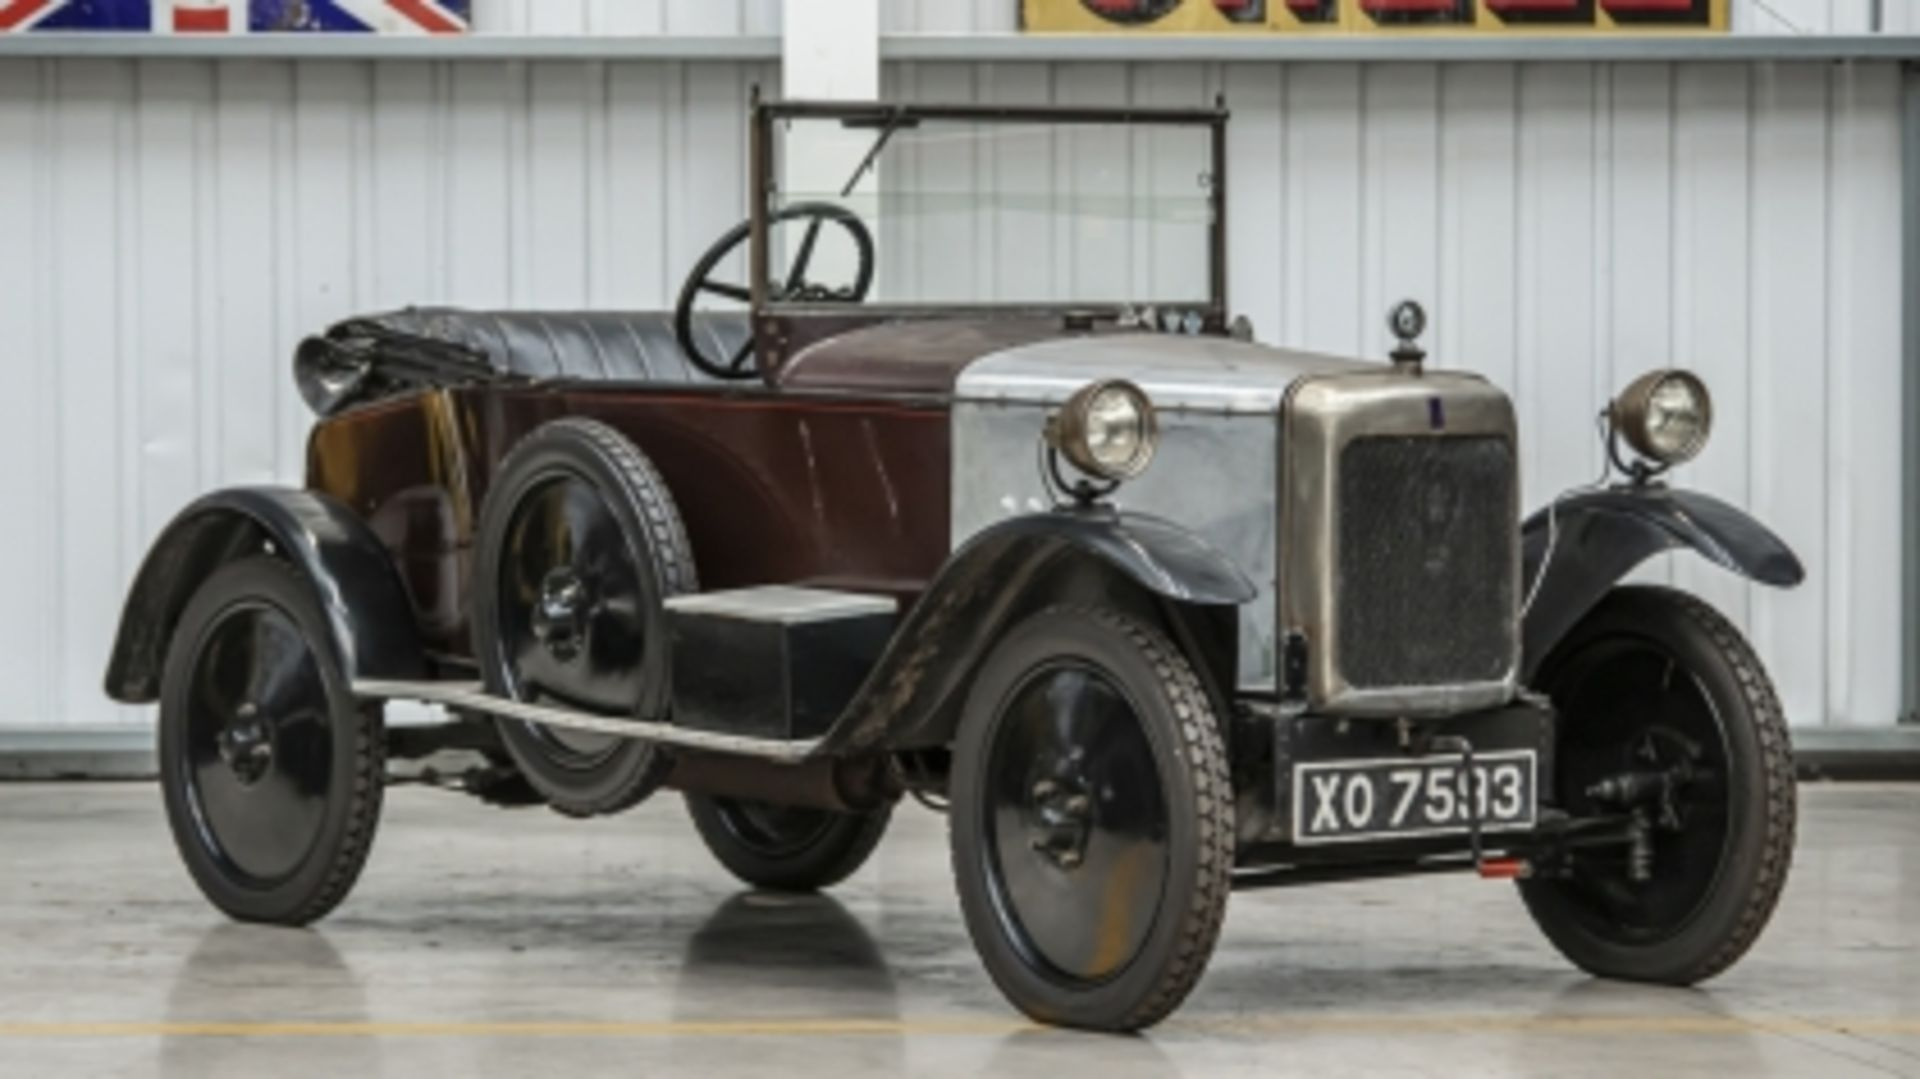 Lot 506 - 1923 BSA TA11 Drophead Coupe with Dickey Seat